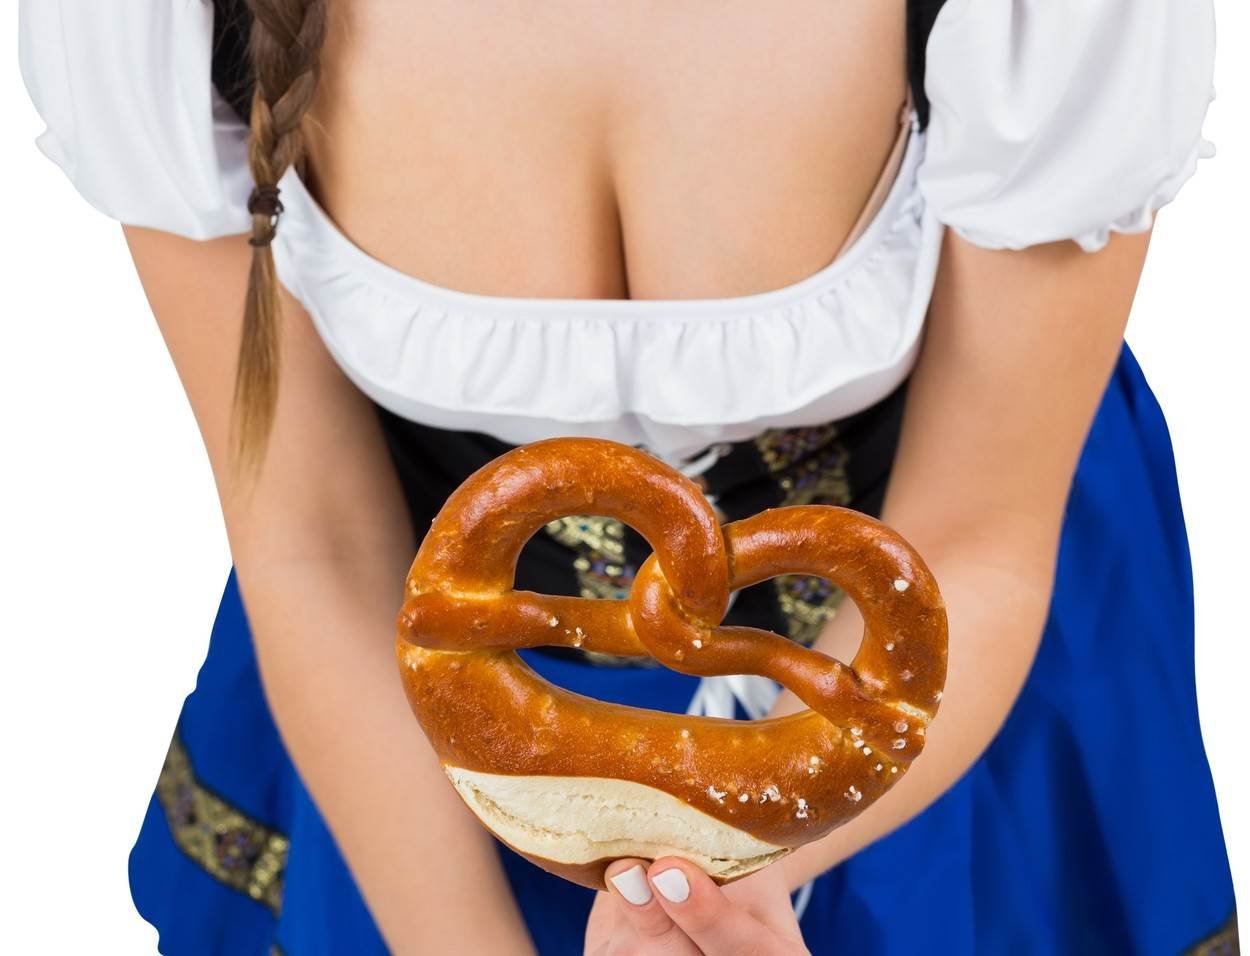 Young Adult;Woman;Female;Caucasian;Pretty;Beautiful;Wearing;Costume;Oktoberfest;German Culture;Celebration;Event;Traditional Clothing;Dress;Culture;Dirndl;Blue;Posing;Holding;Pretzel;Cleavage;Cut Out;Isolated;White Background